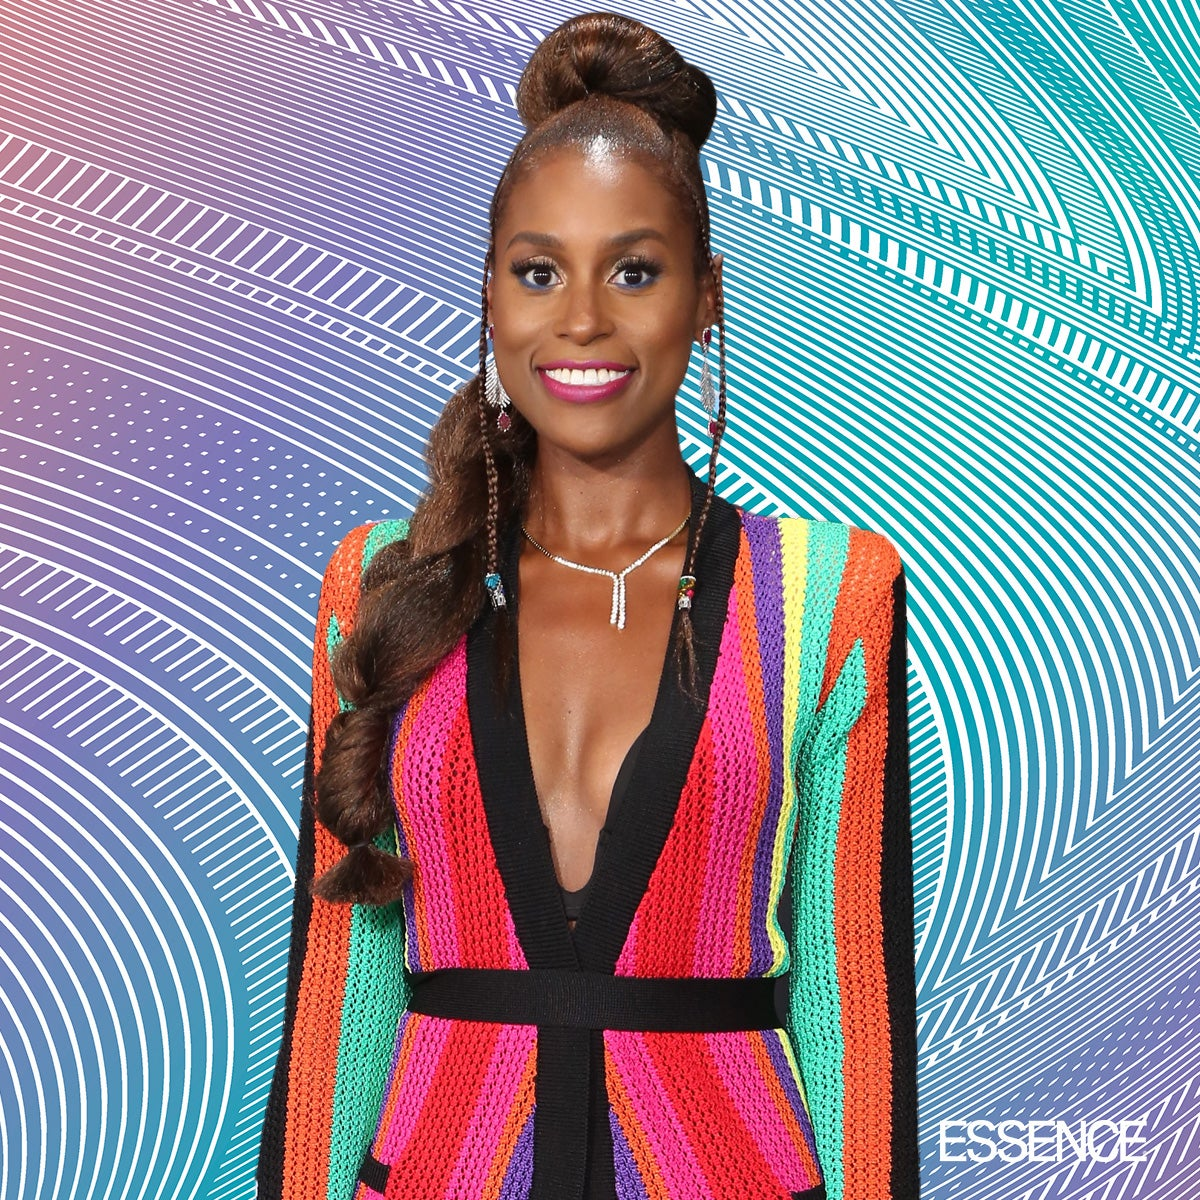 Issa Rae Paired Her Balmain With Braids for the 2017 BET Awards